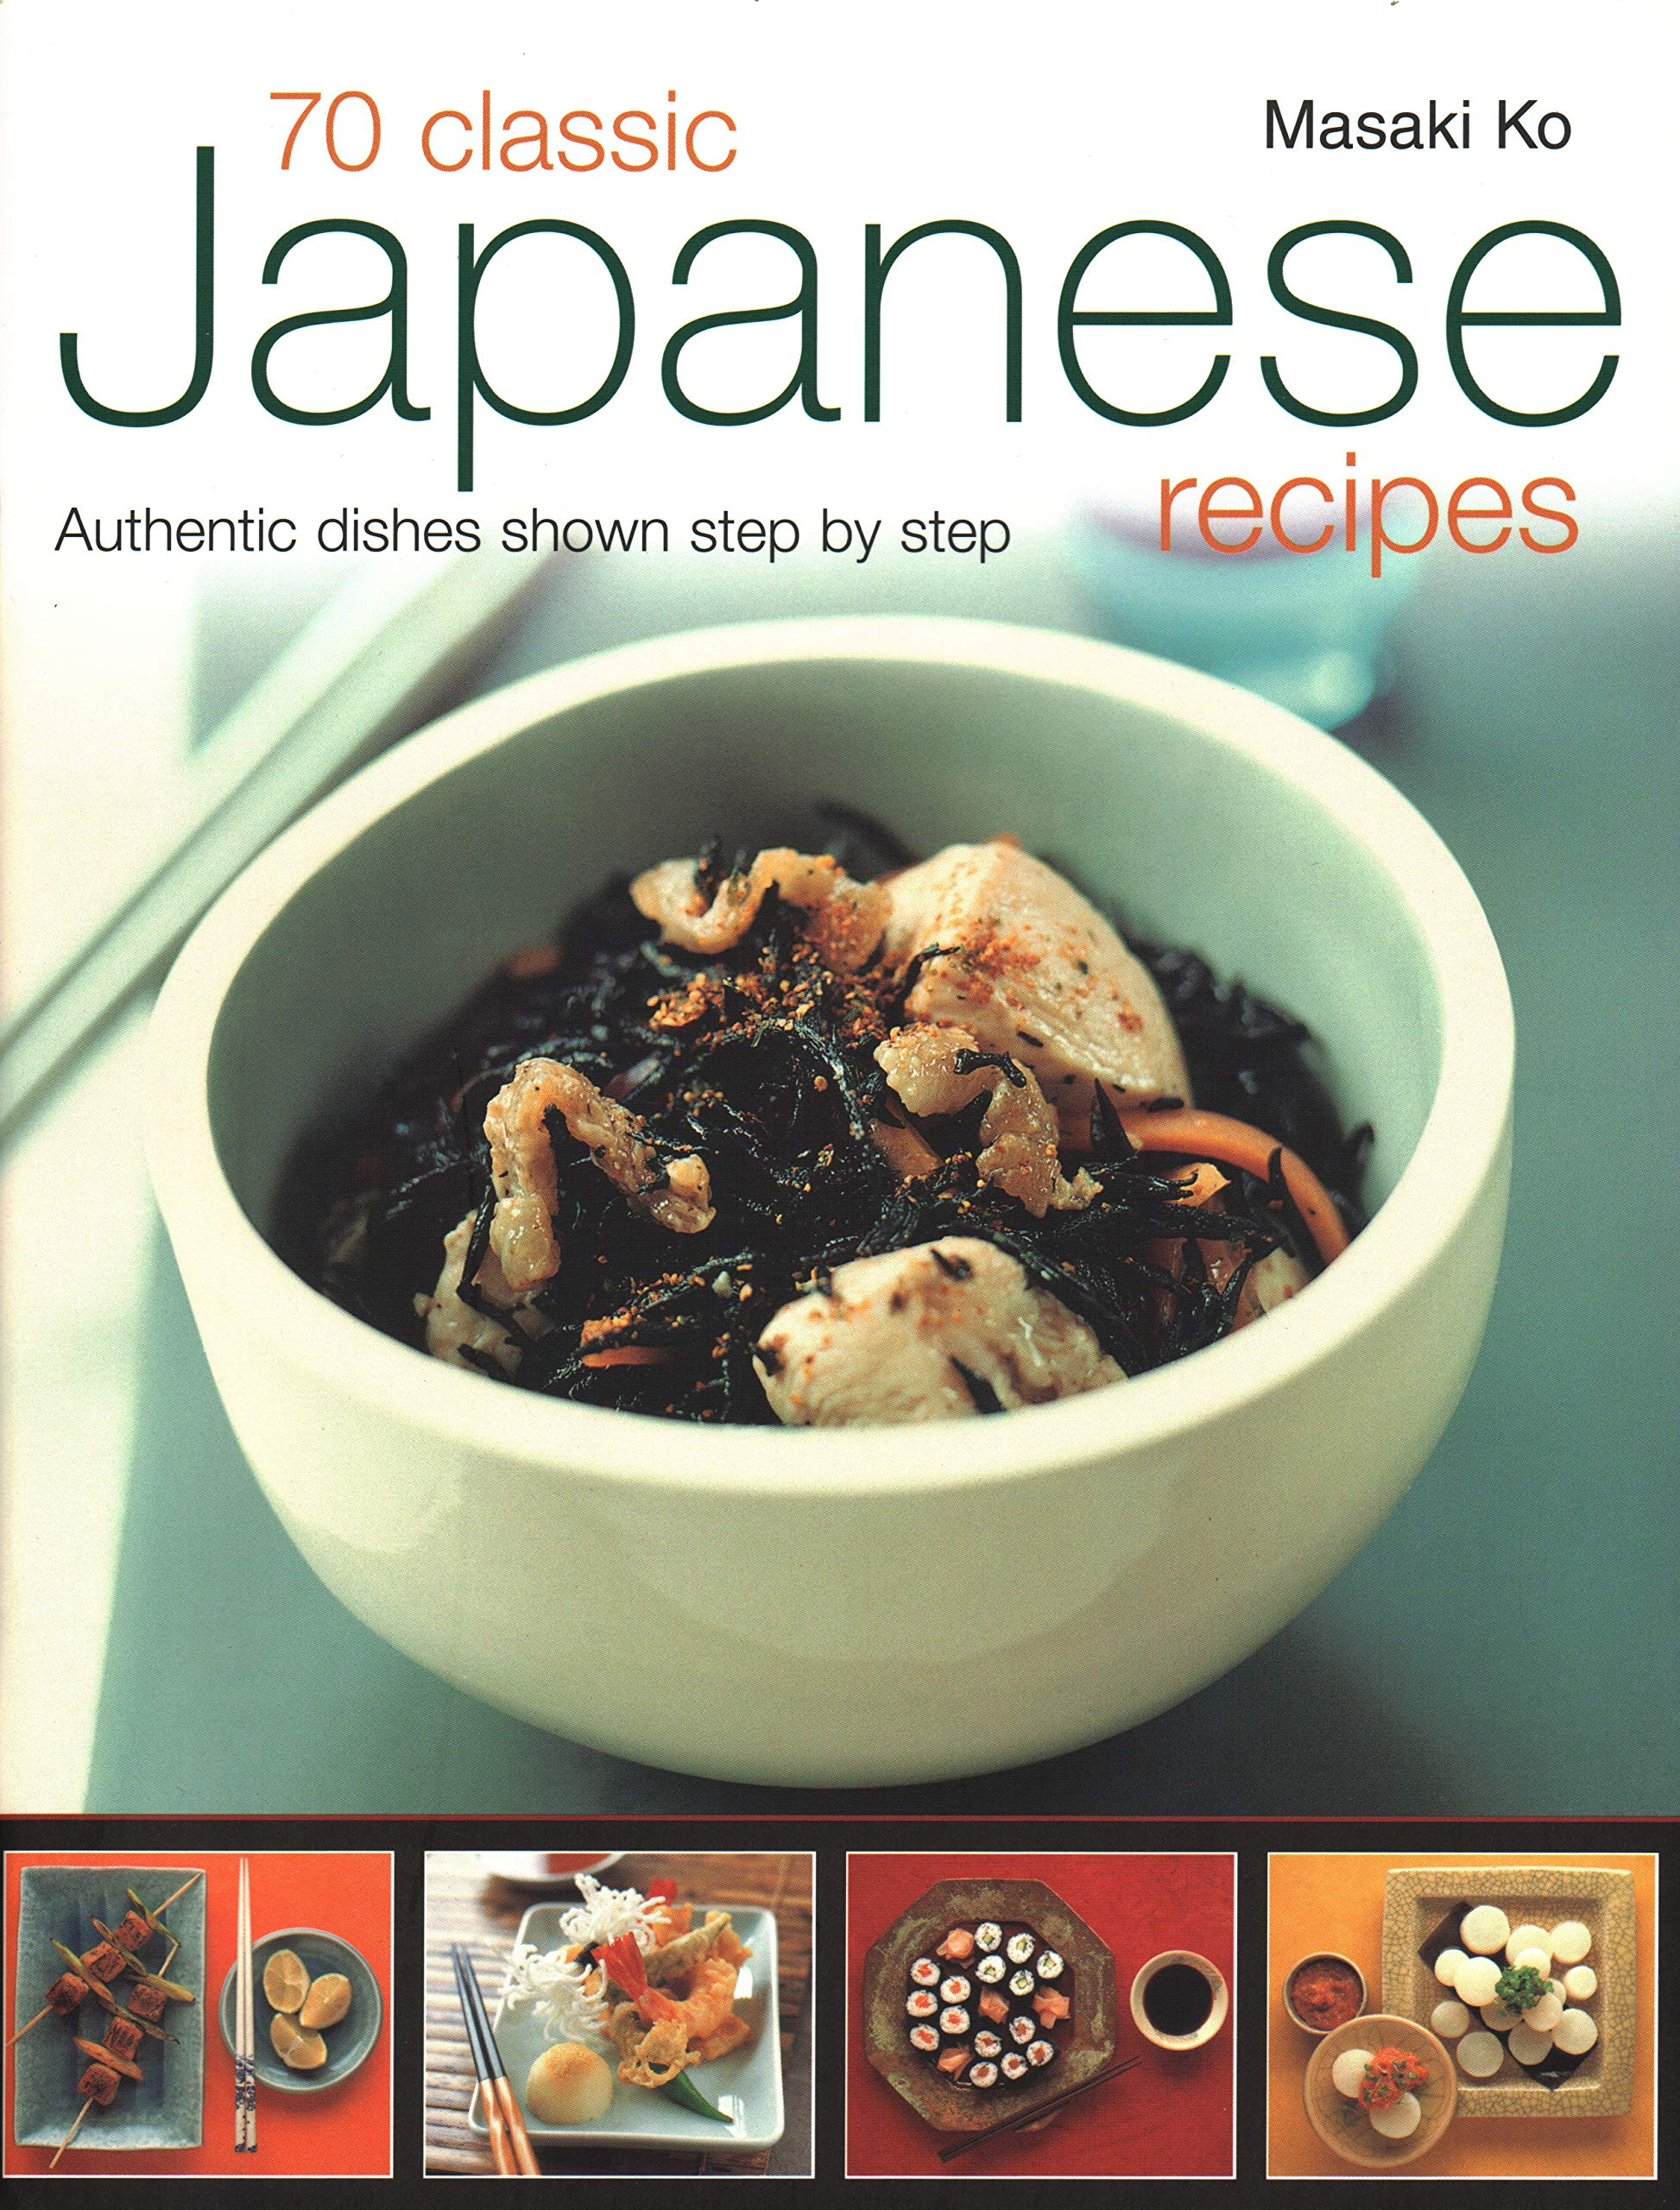 70 Classic Japanese Recipes Authentic Recipes Shown Step By Step Amazon Co Uk Masaki Ko 9781843093367 Books